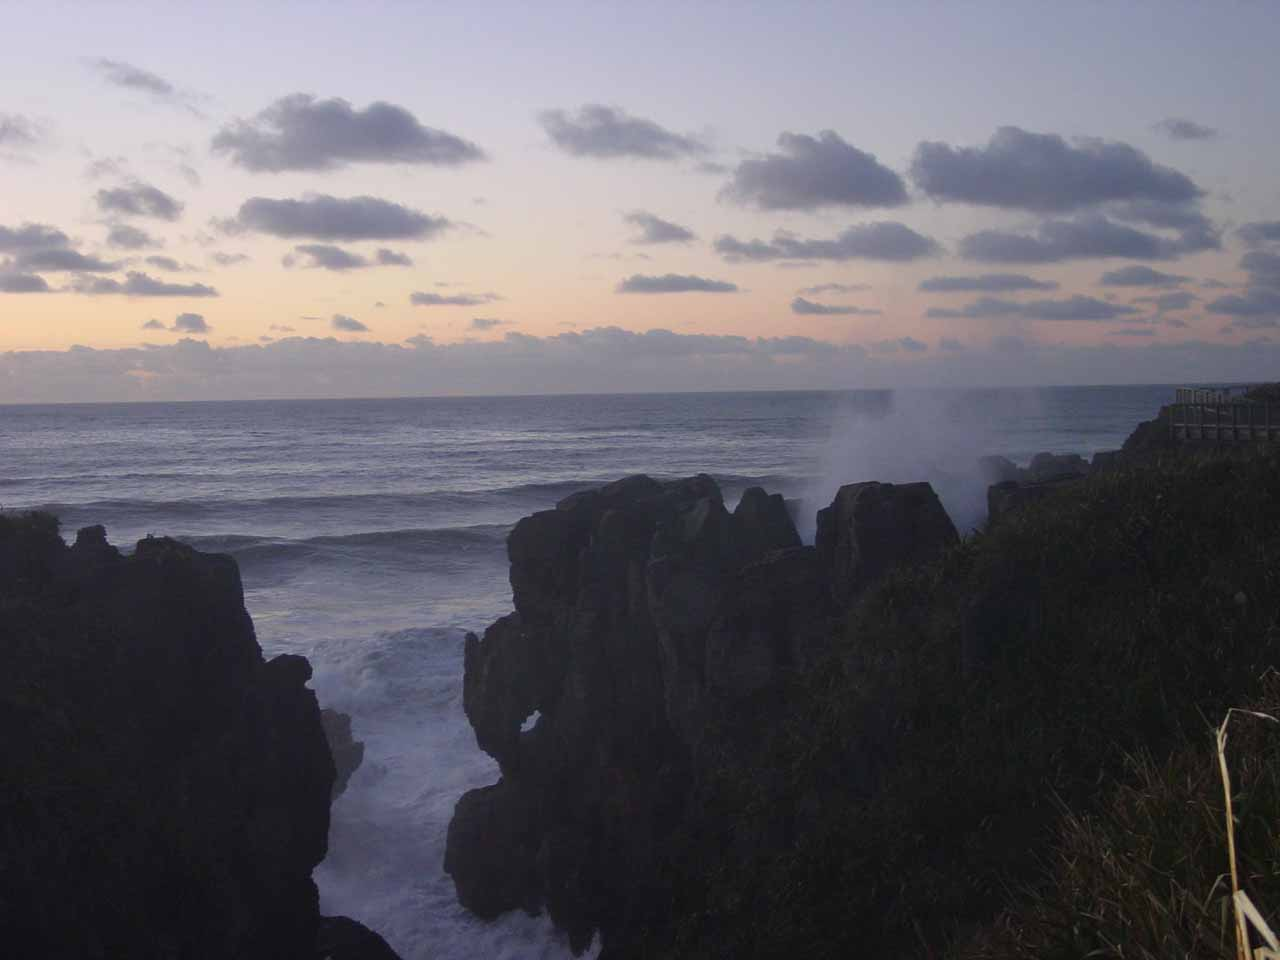 On our initial trip to New Zealand in 2004, Julie and I managed to stay at the Pancake Rocks in bitterly cold temperatures in time to catch the sunset and all the changing colors thereafter